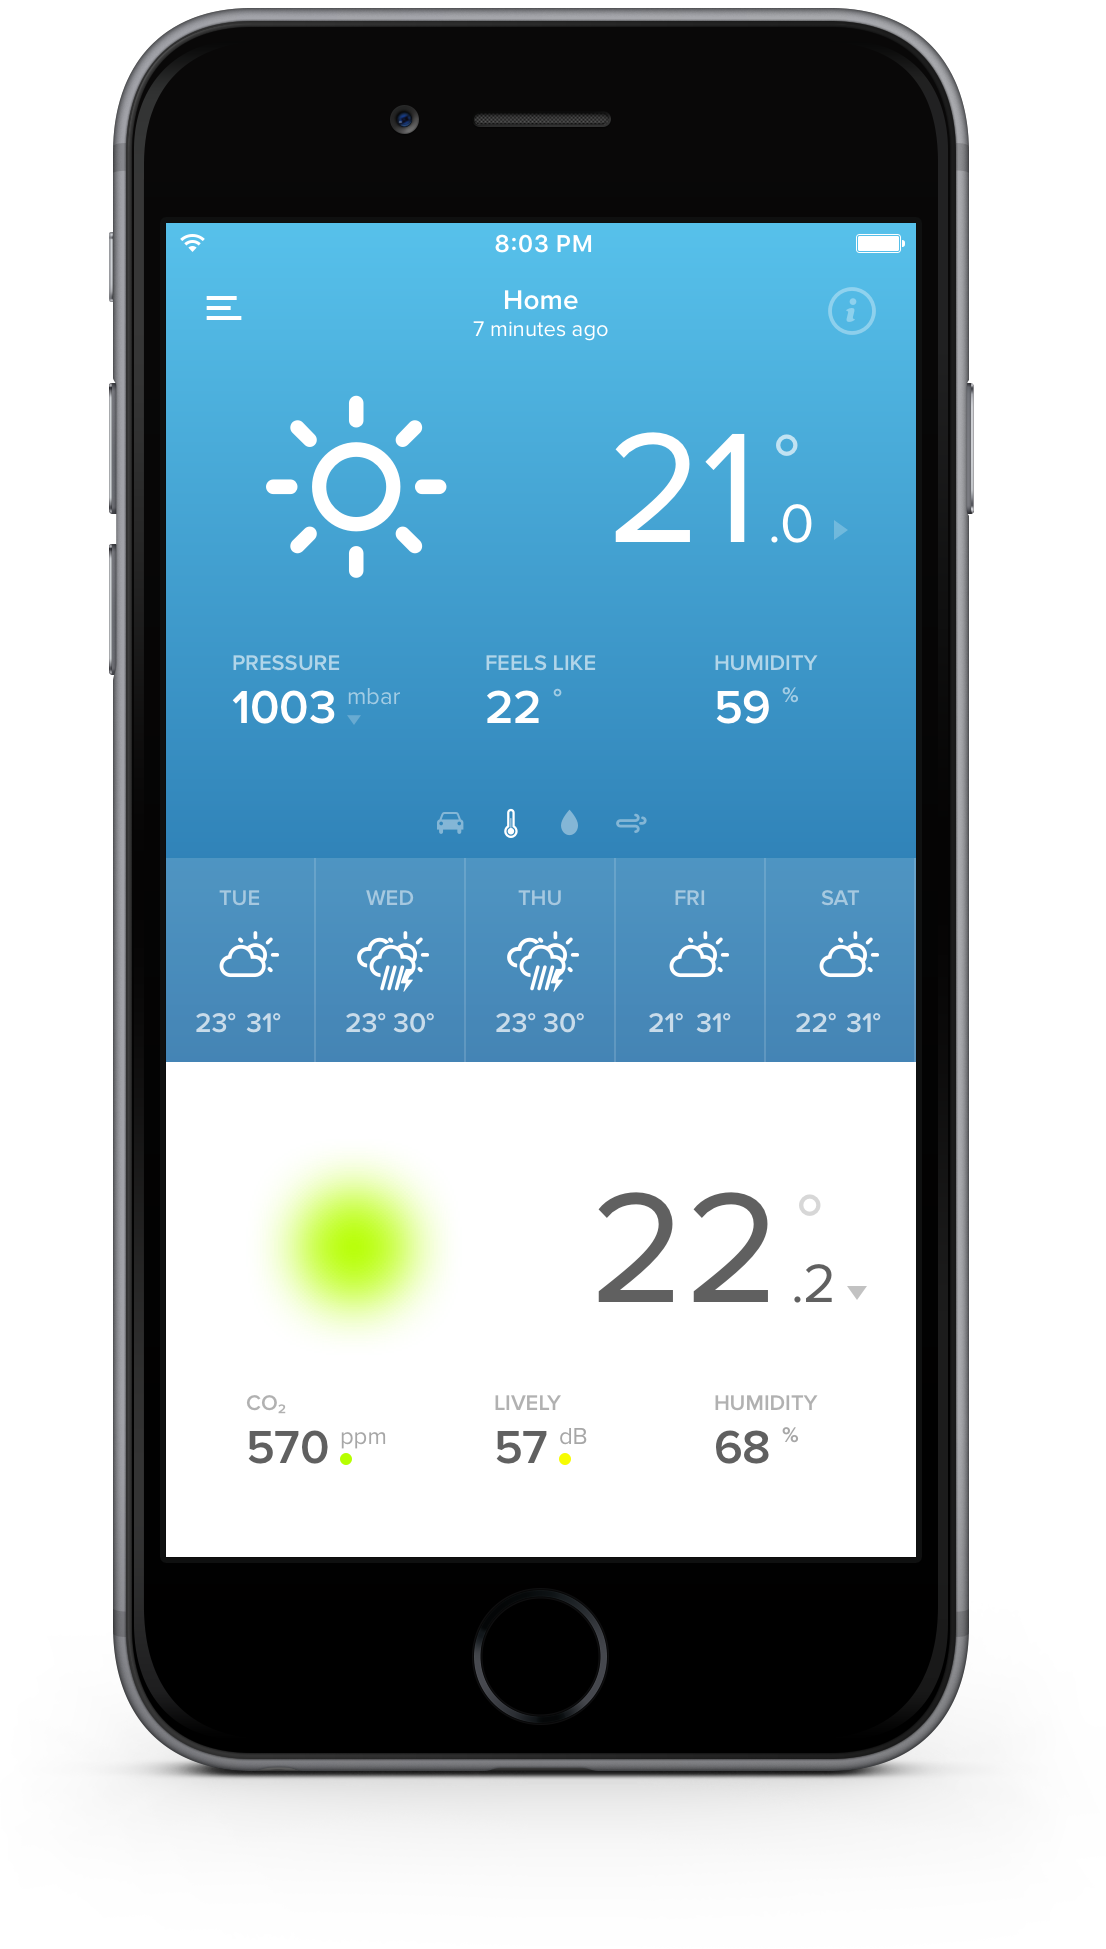 iphone weather station